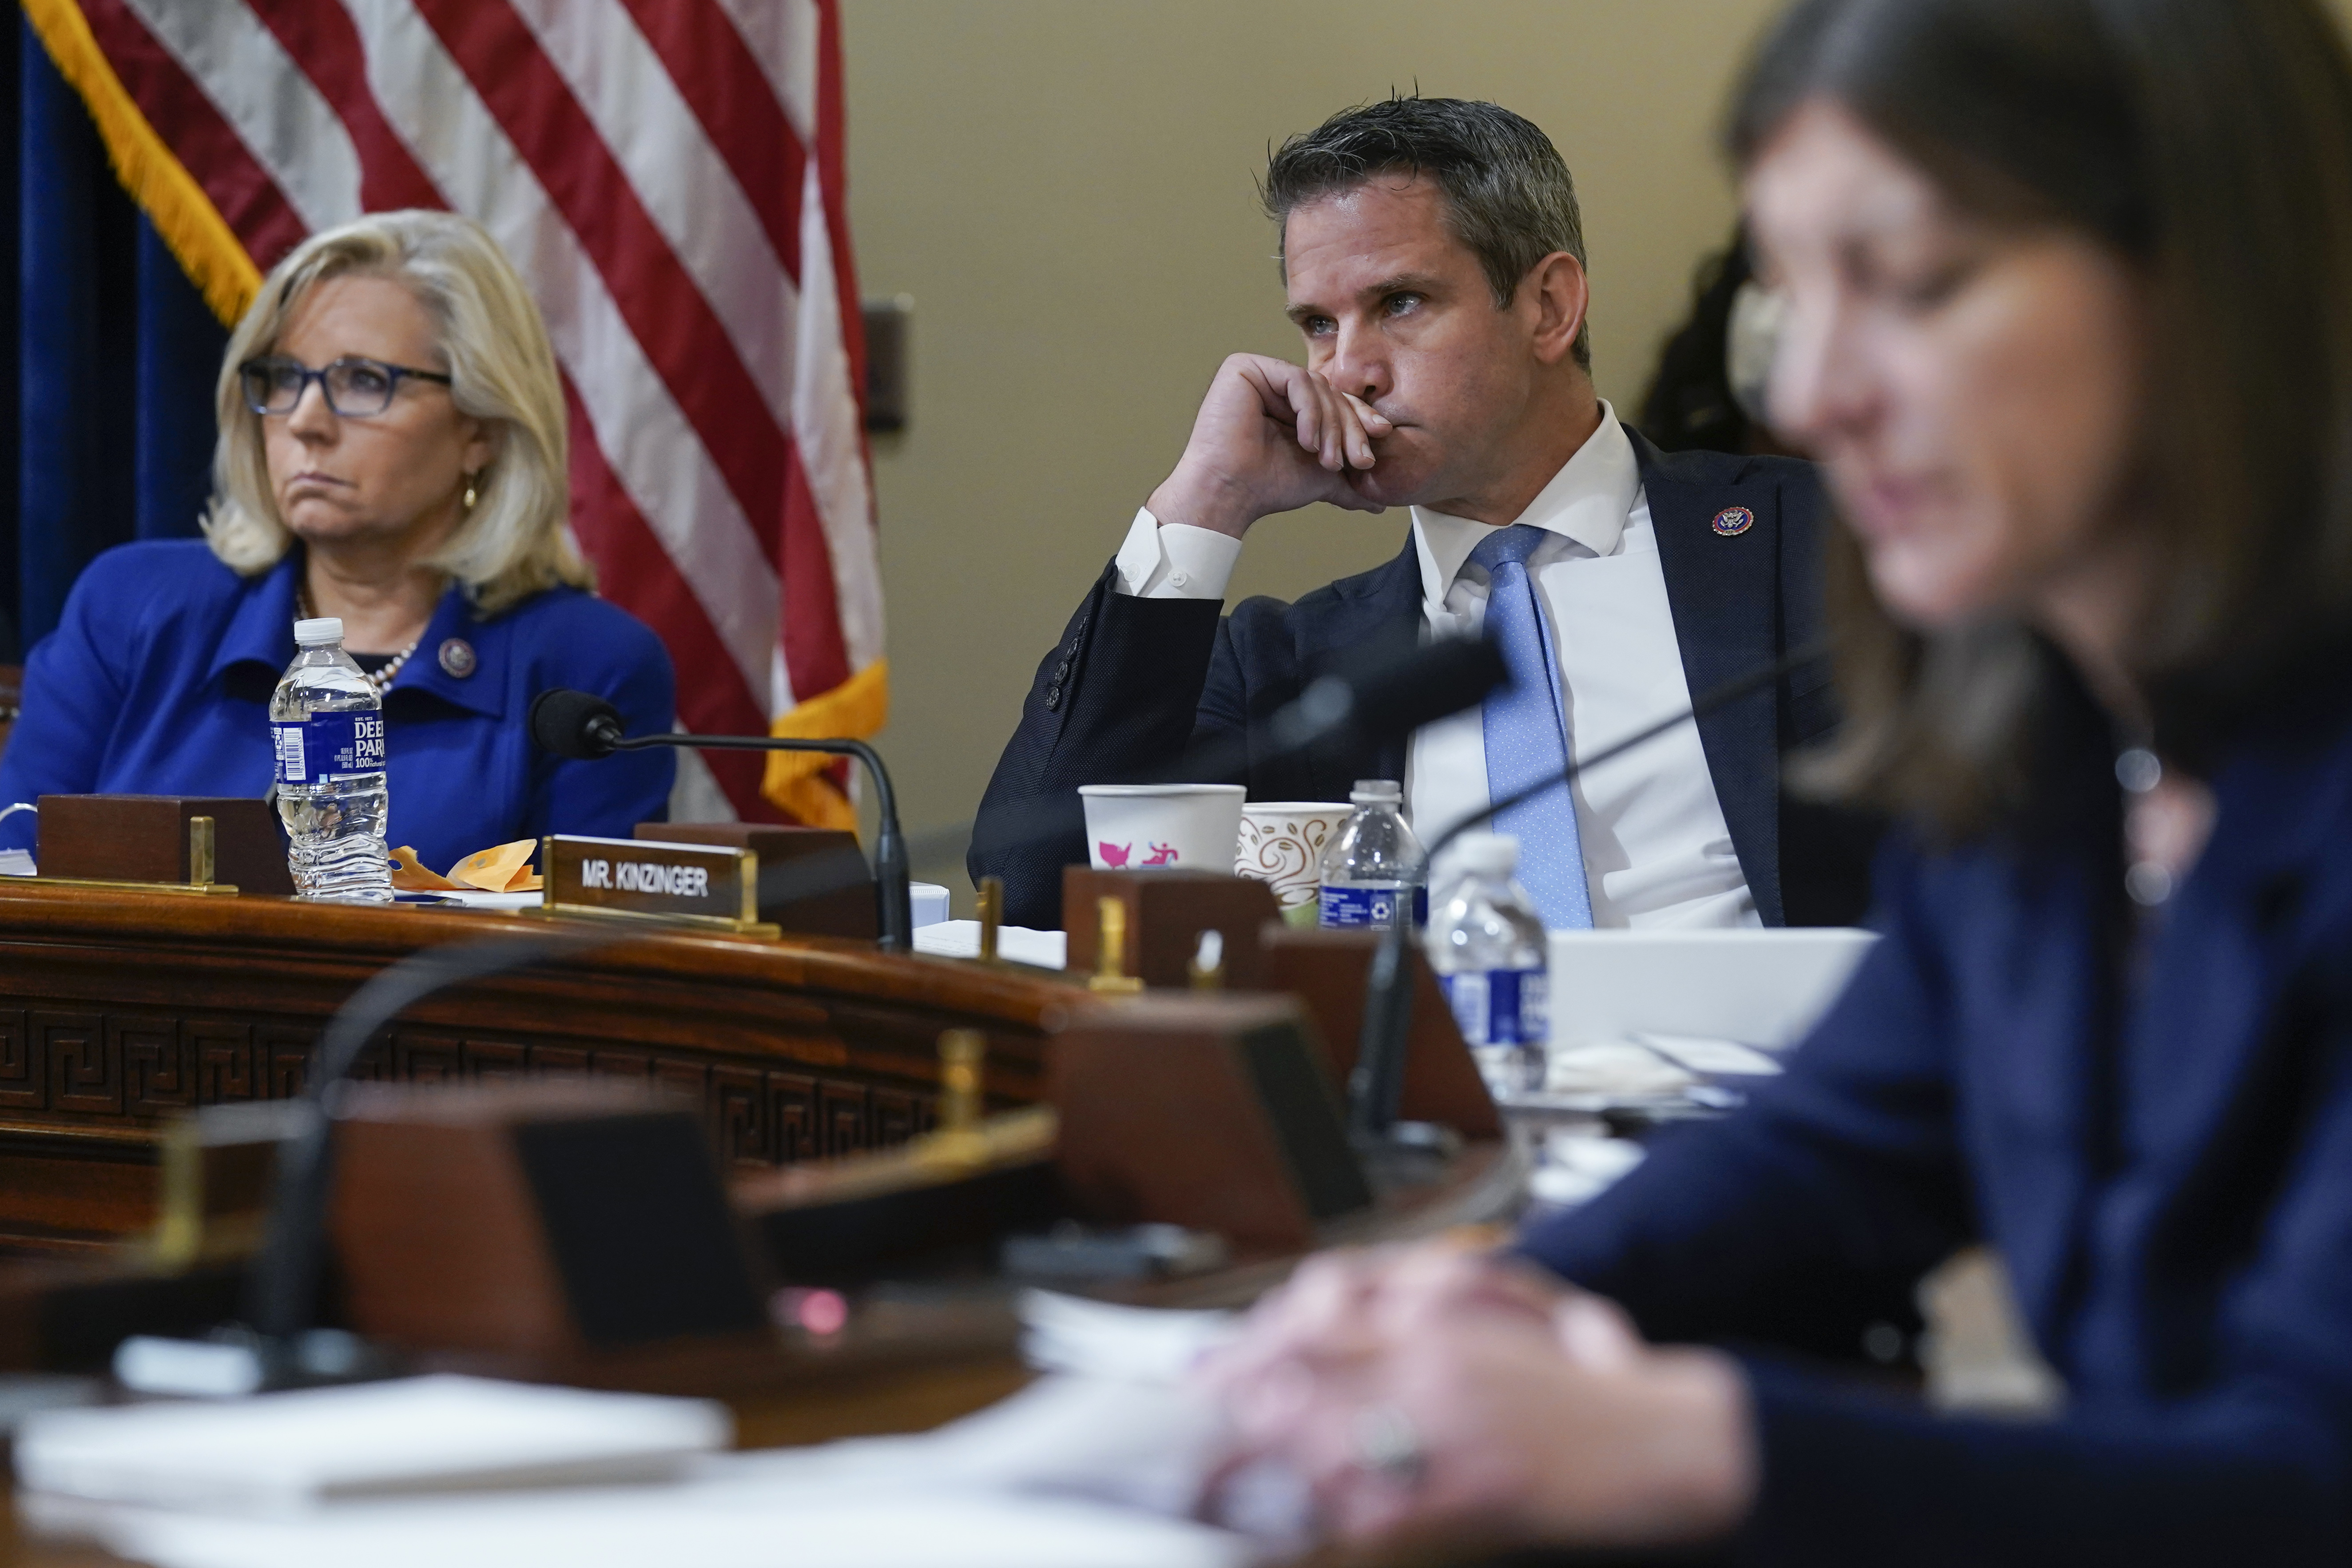 Rep. Liz Cheney, R-Wyo., and Rep. Adam Kinzinger, R-Ill., listen during the House select committee hearing on the Jan. 6 attack.